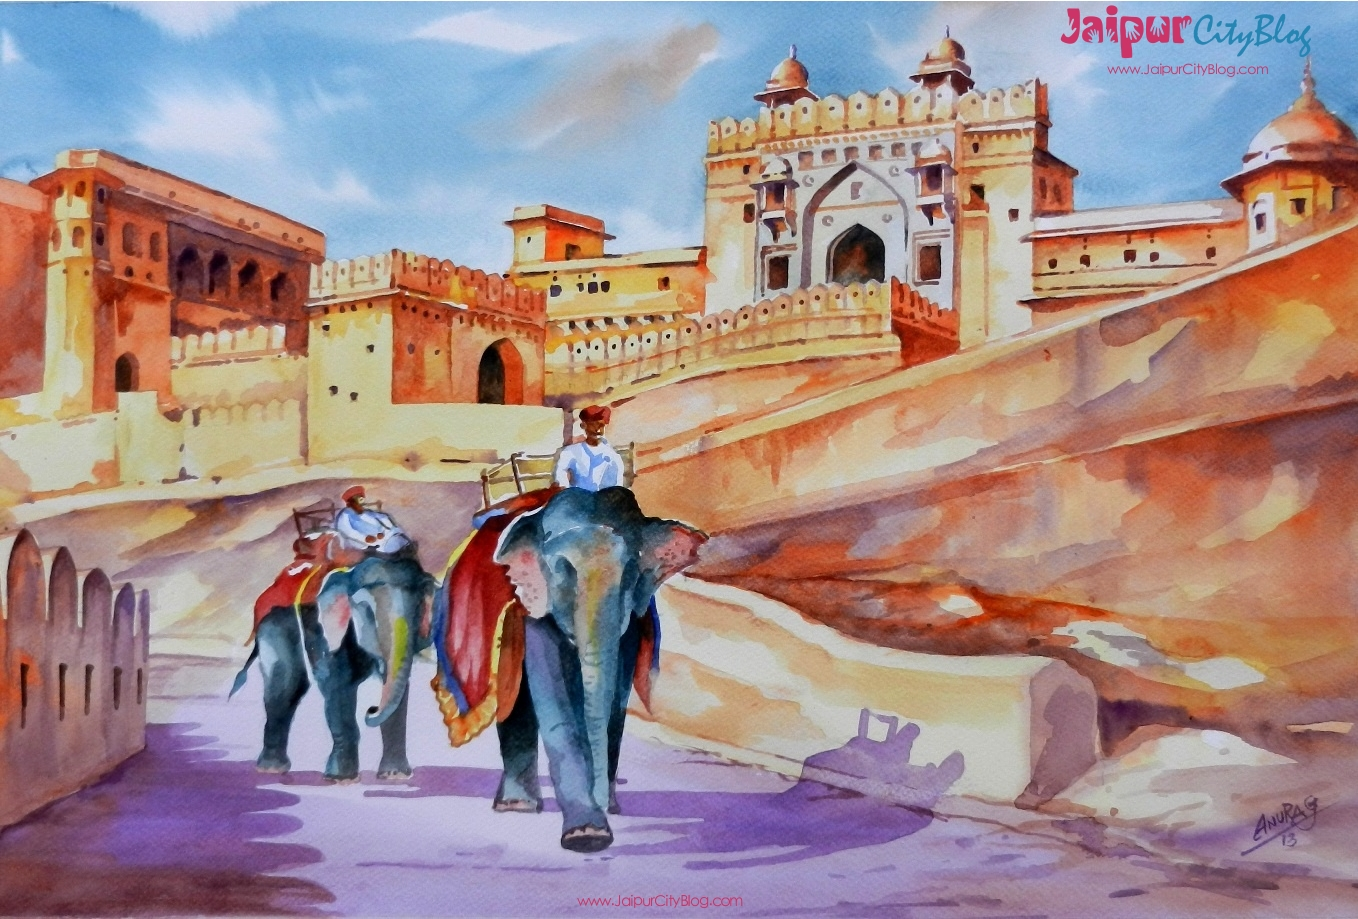 Search results for india 2015 image calendar 2015 for Archaeological monuments in india mural paintings